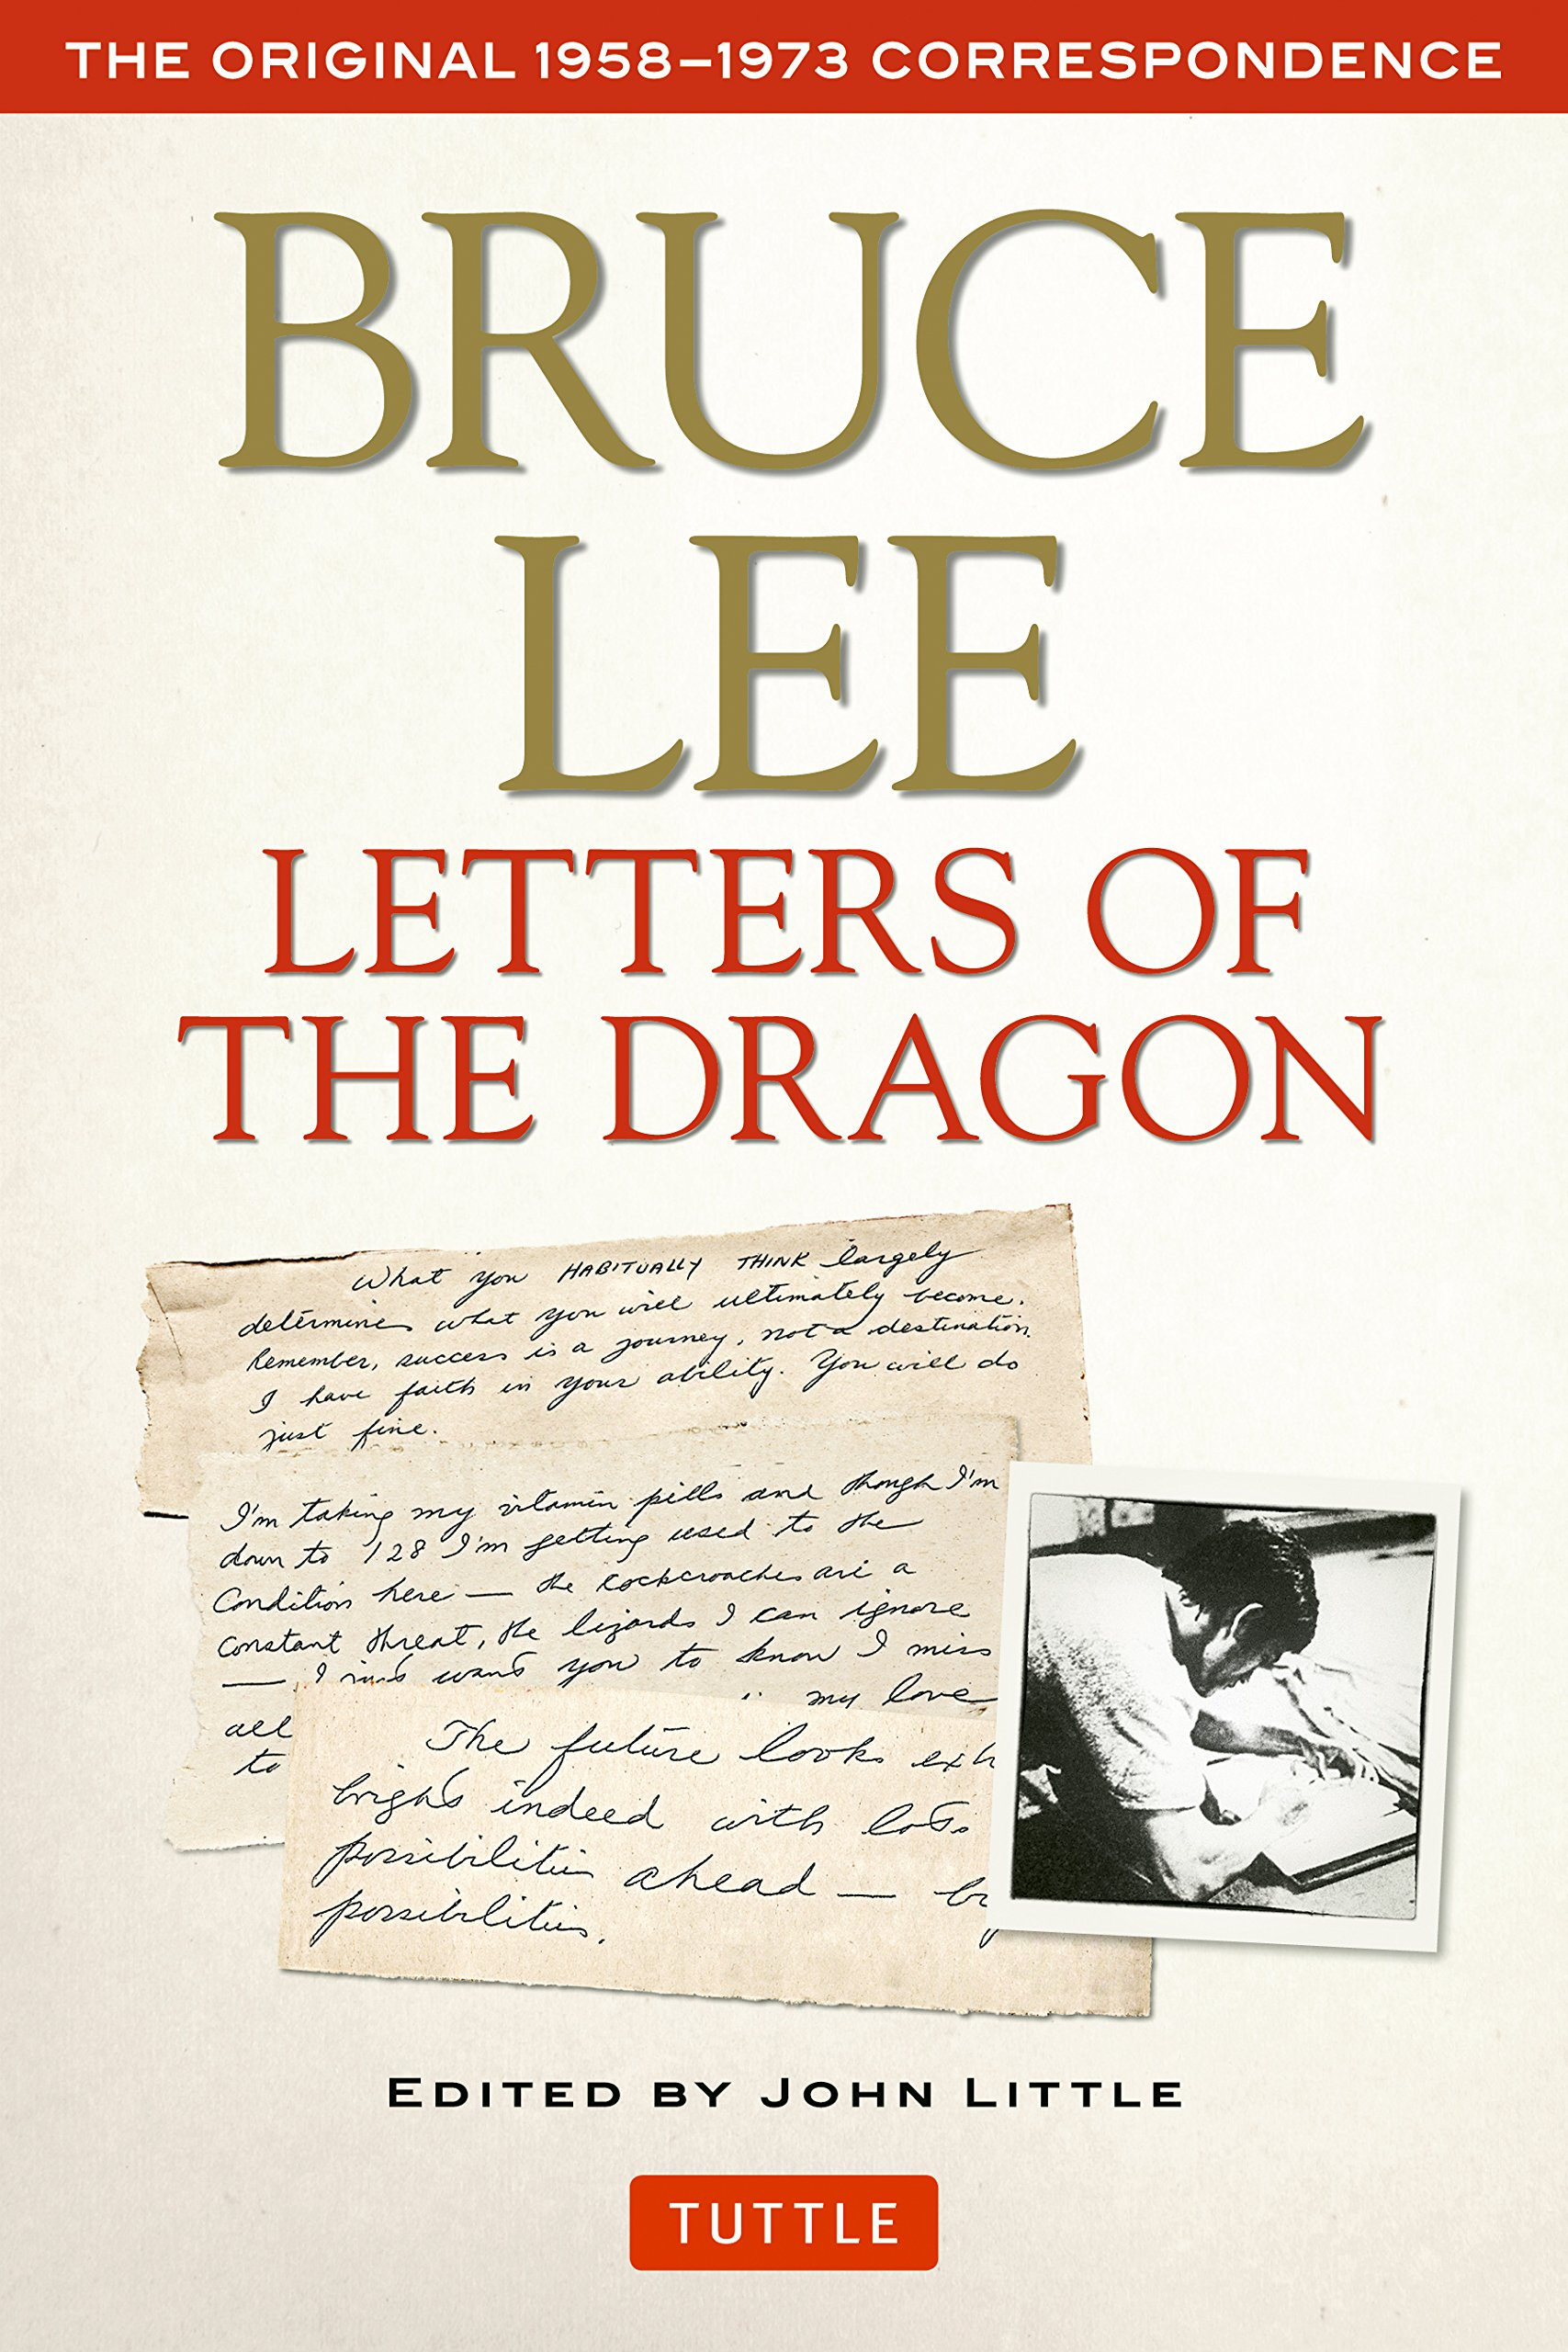 Amazoncom Bruce Lee Letters Of The Dragon The Original 1958 1973